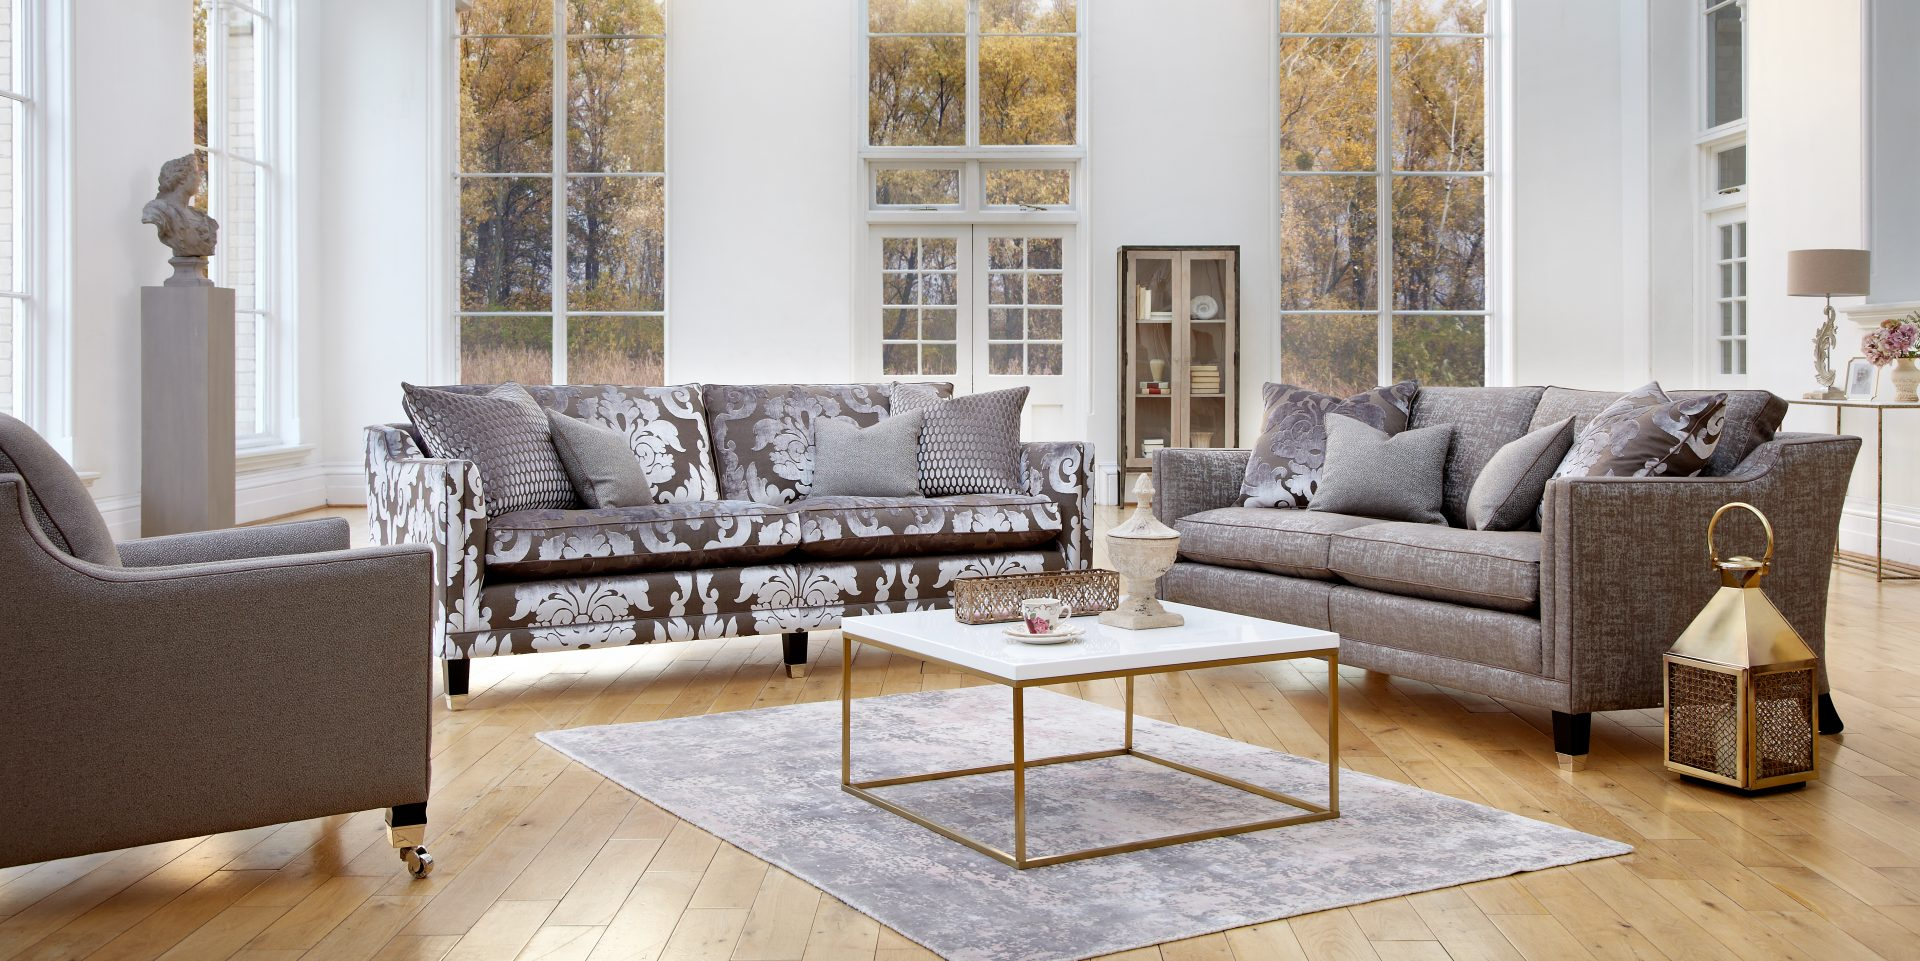 Fantastic Duresta Roomes Furniture Interiors Make Yourself A Home Alphanode Cool Chair Designs And Ideas Alphanodeonline